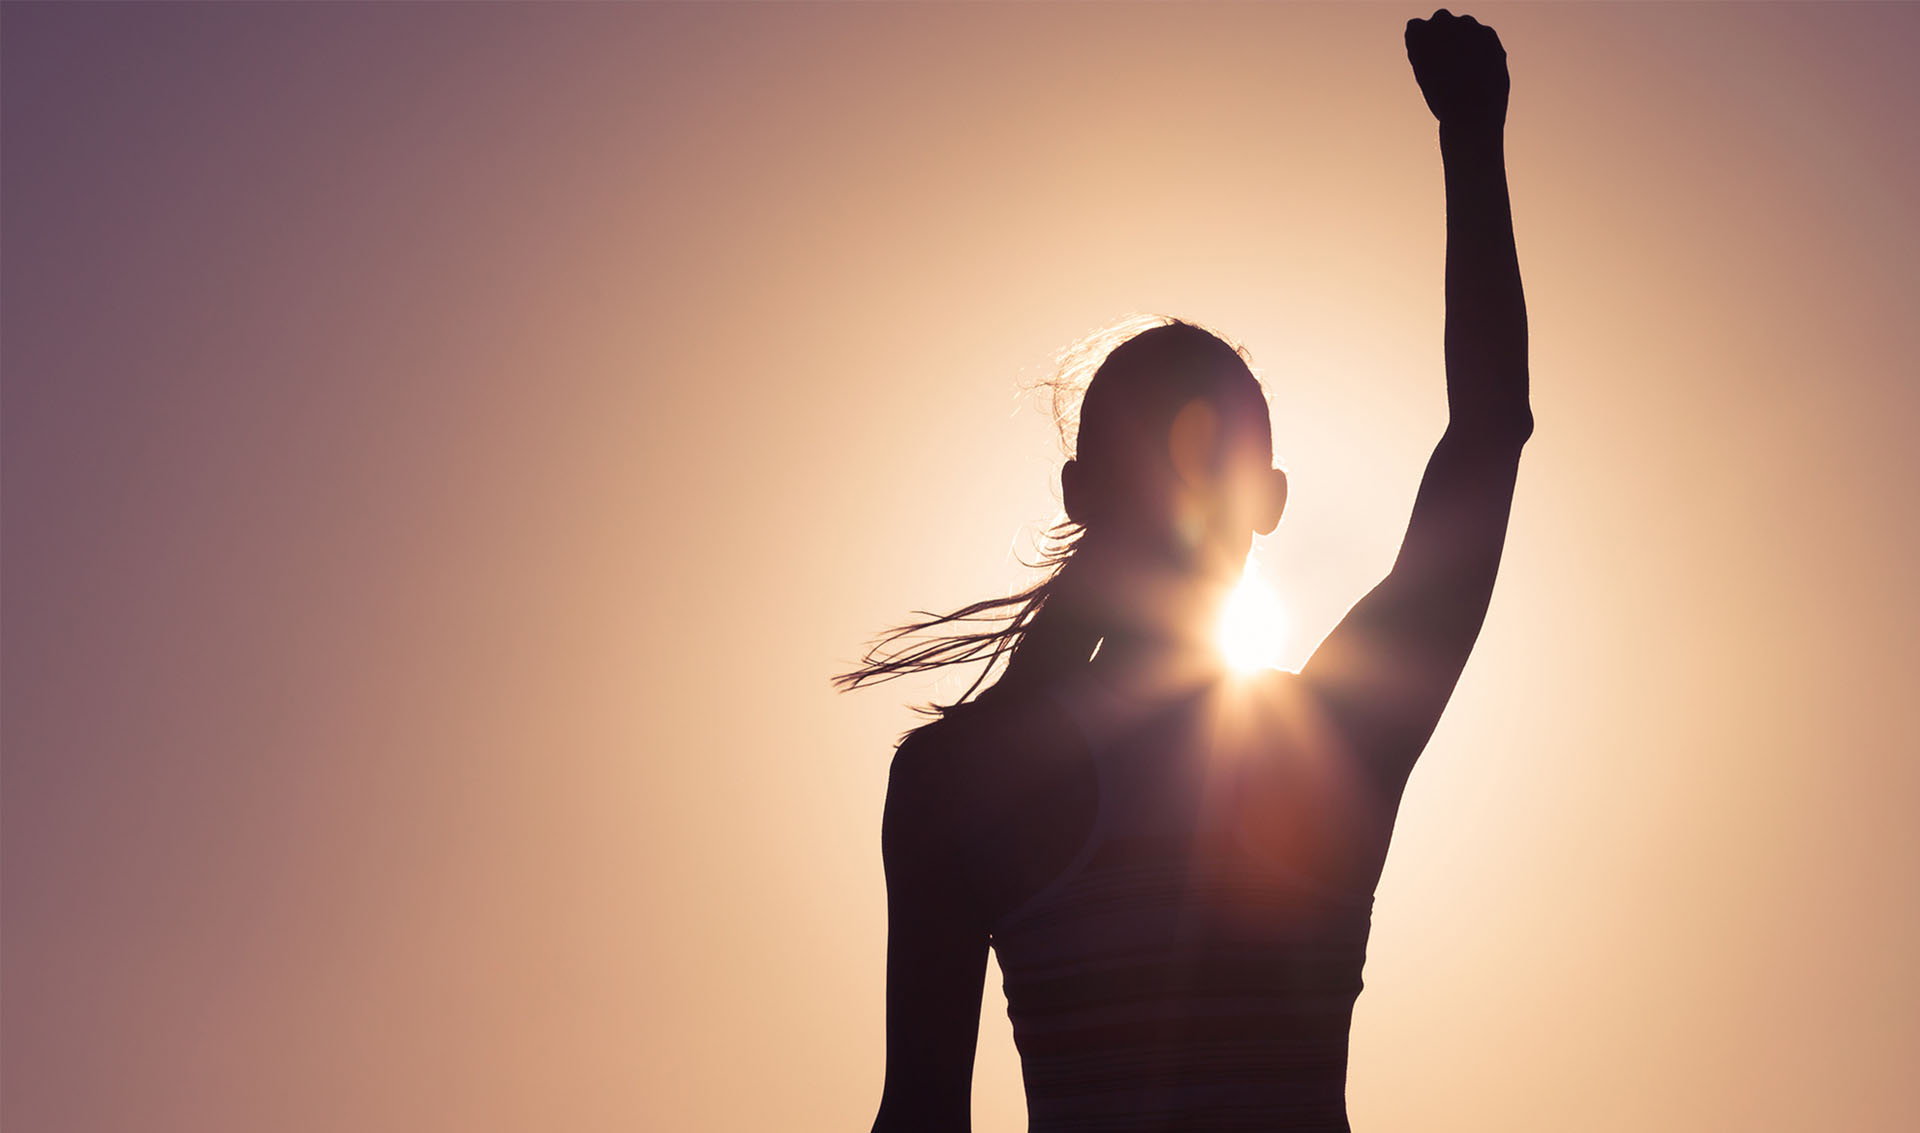 A sillouette of a woman in the sunset with her right fist in the air